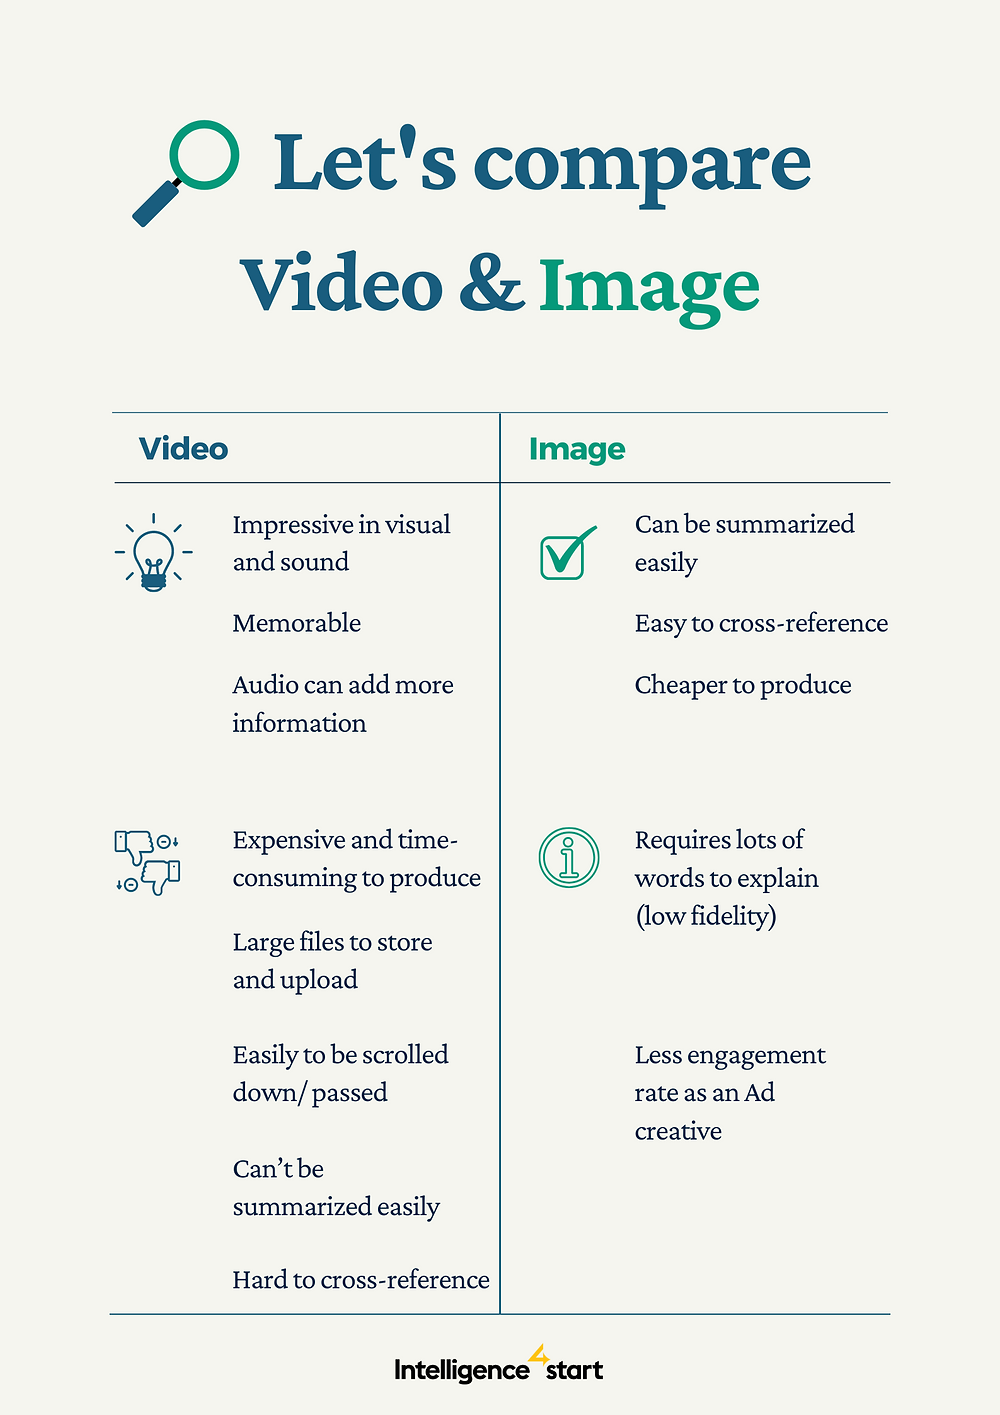 Corporate Video: Does Your Company Need One?